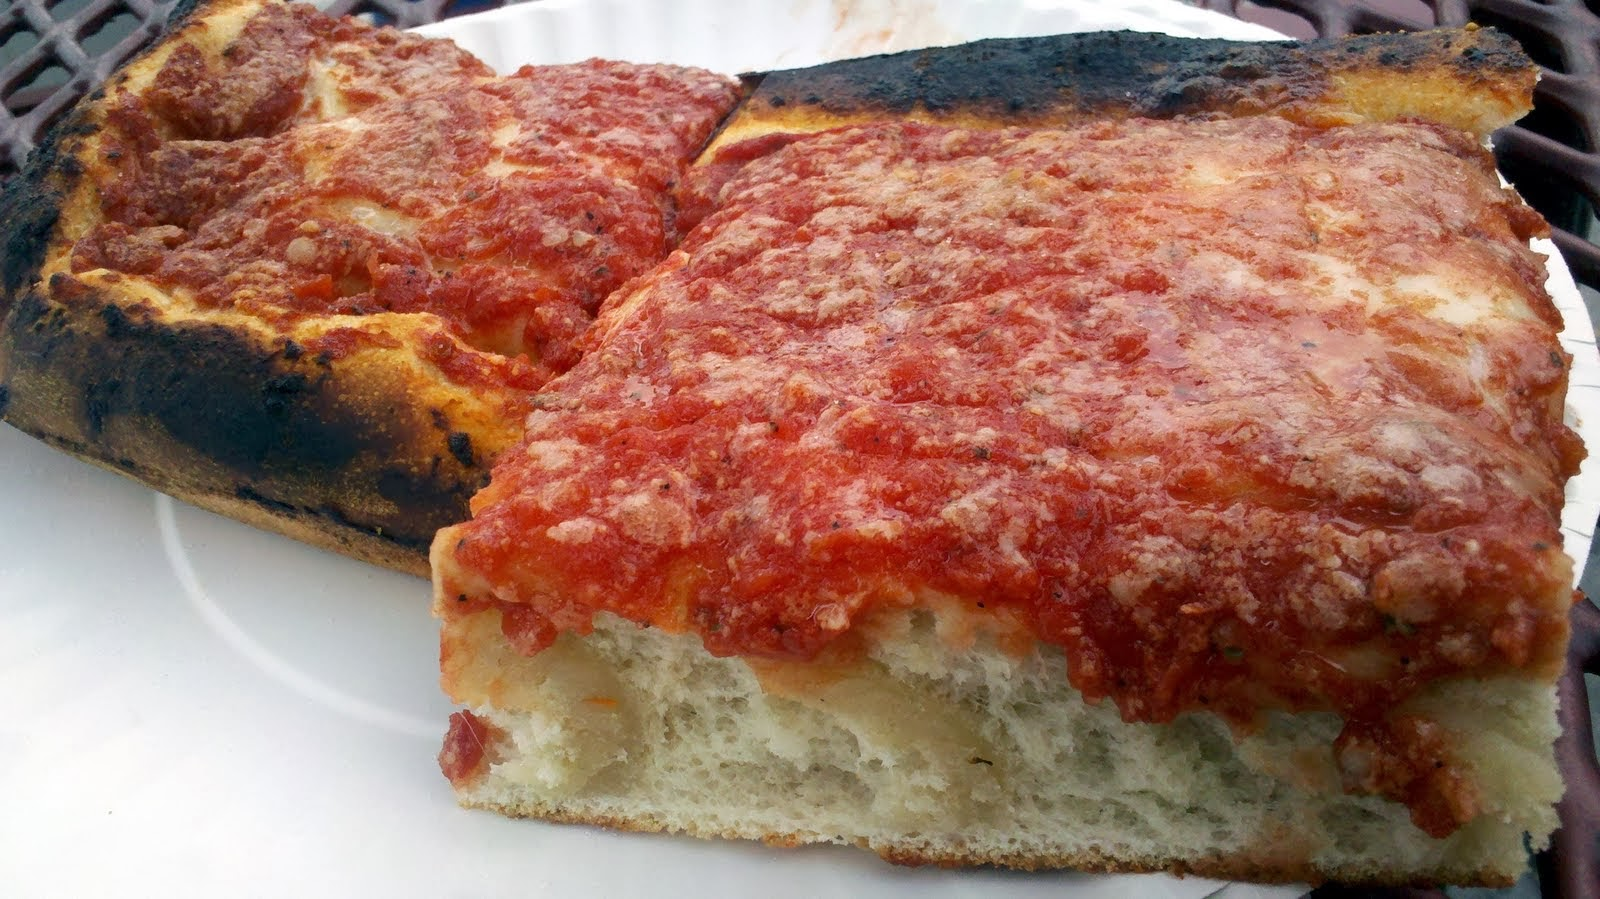 Pizza Quixote: Ranking the Philly Style Tomato Pies